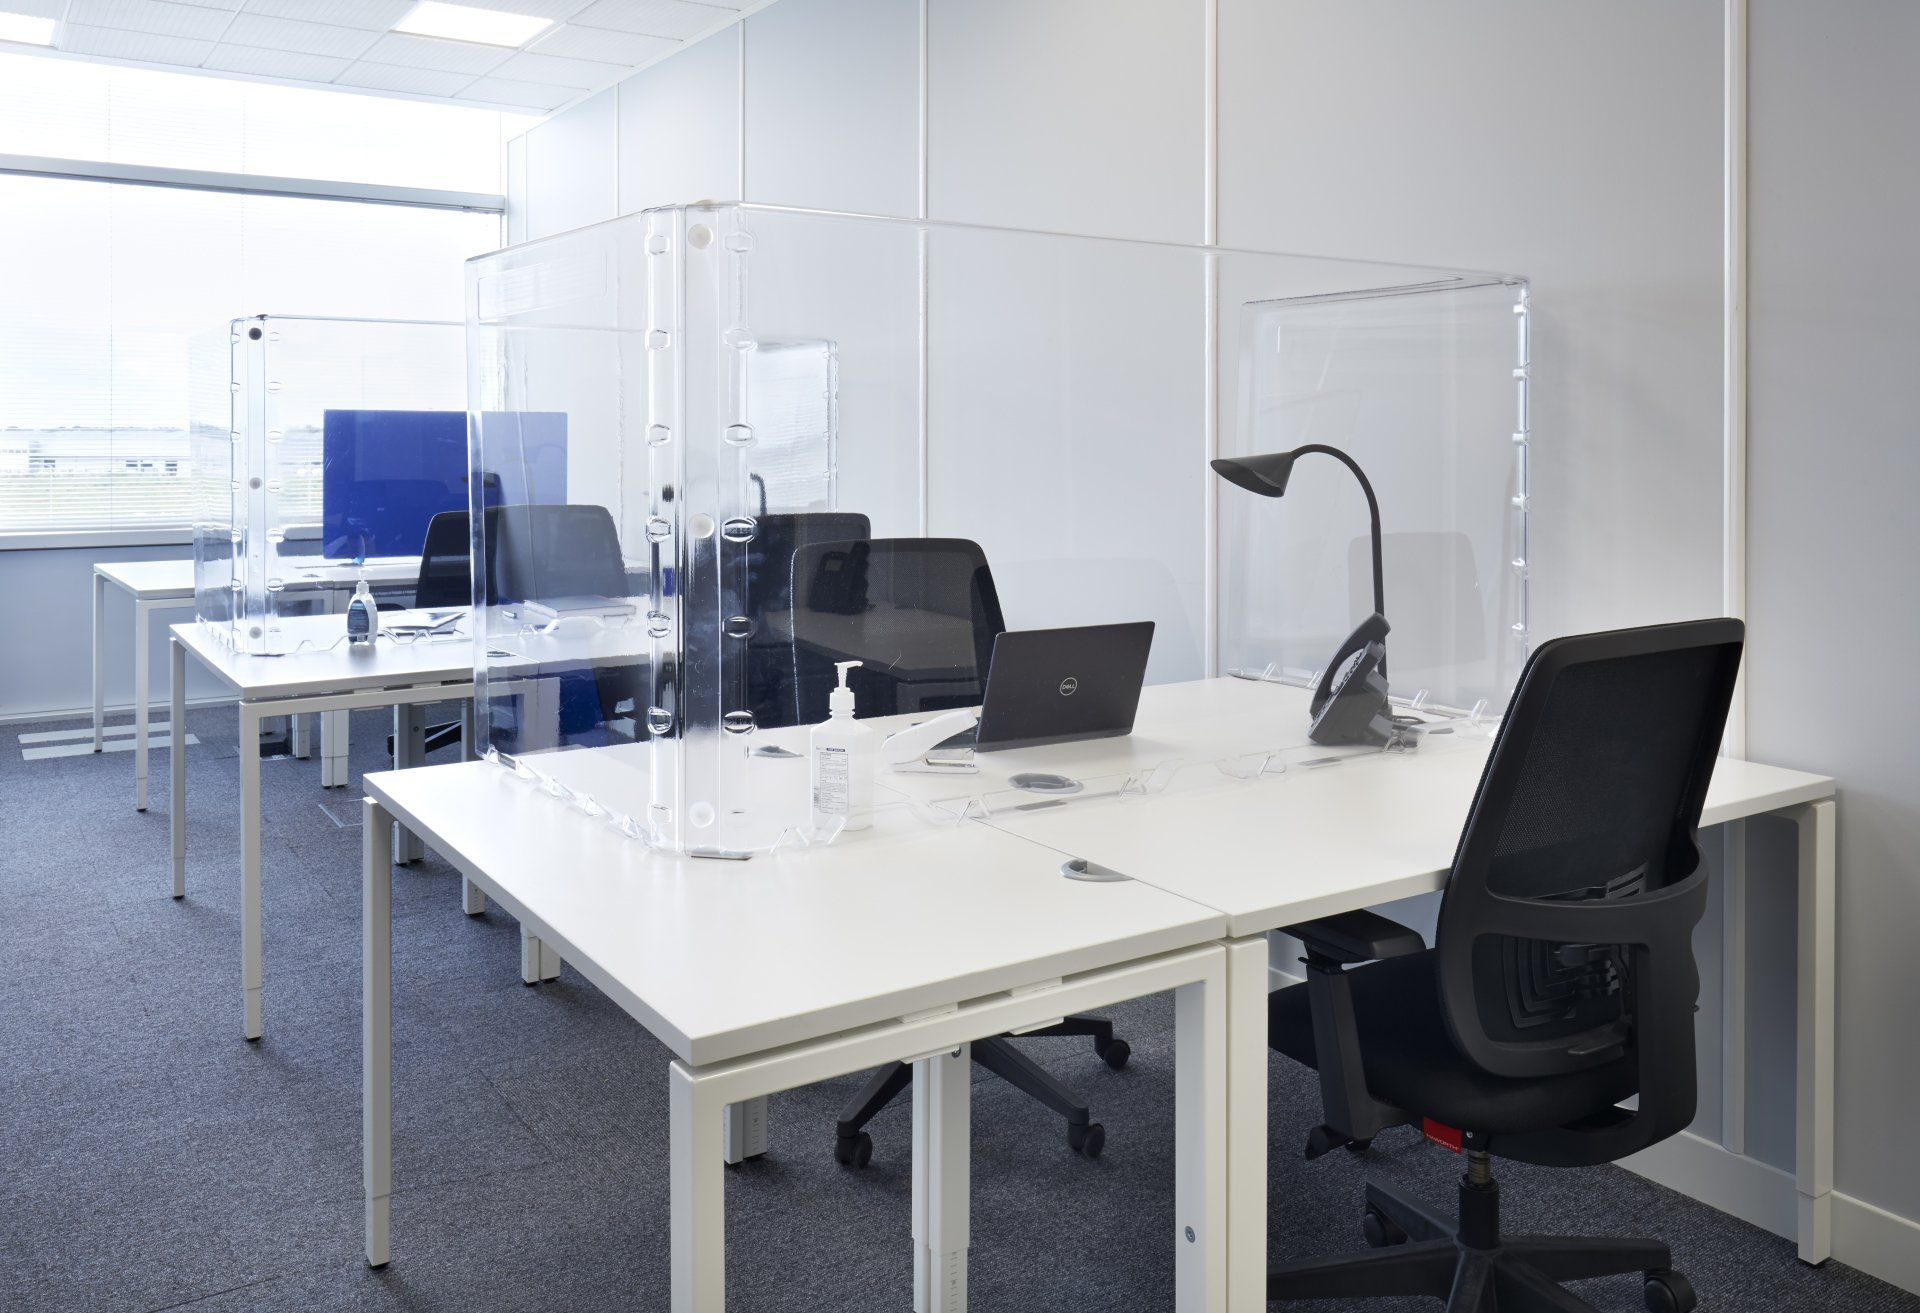 Desk Separators - Table Dividers | Total Products Group